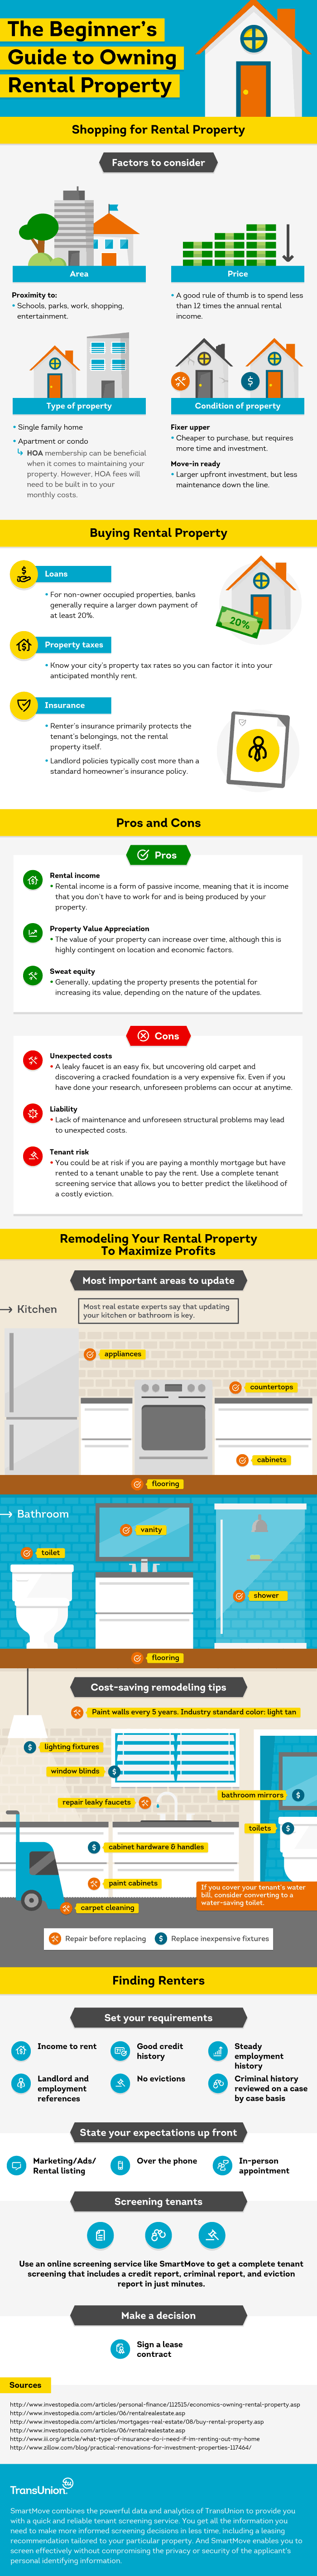 Beginner's Guide To Owning Rental Property [INFOGRAPHIC]